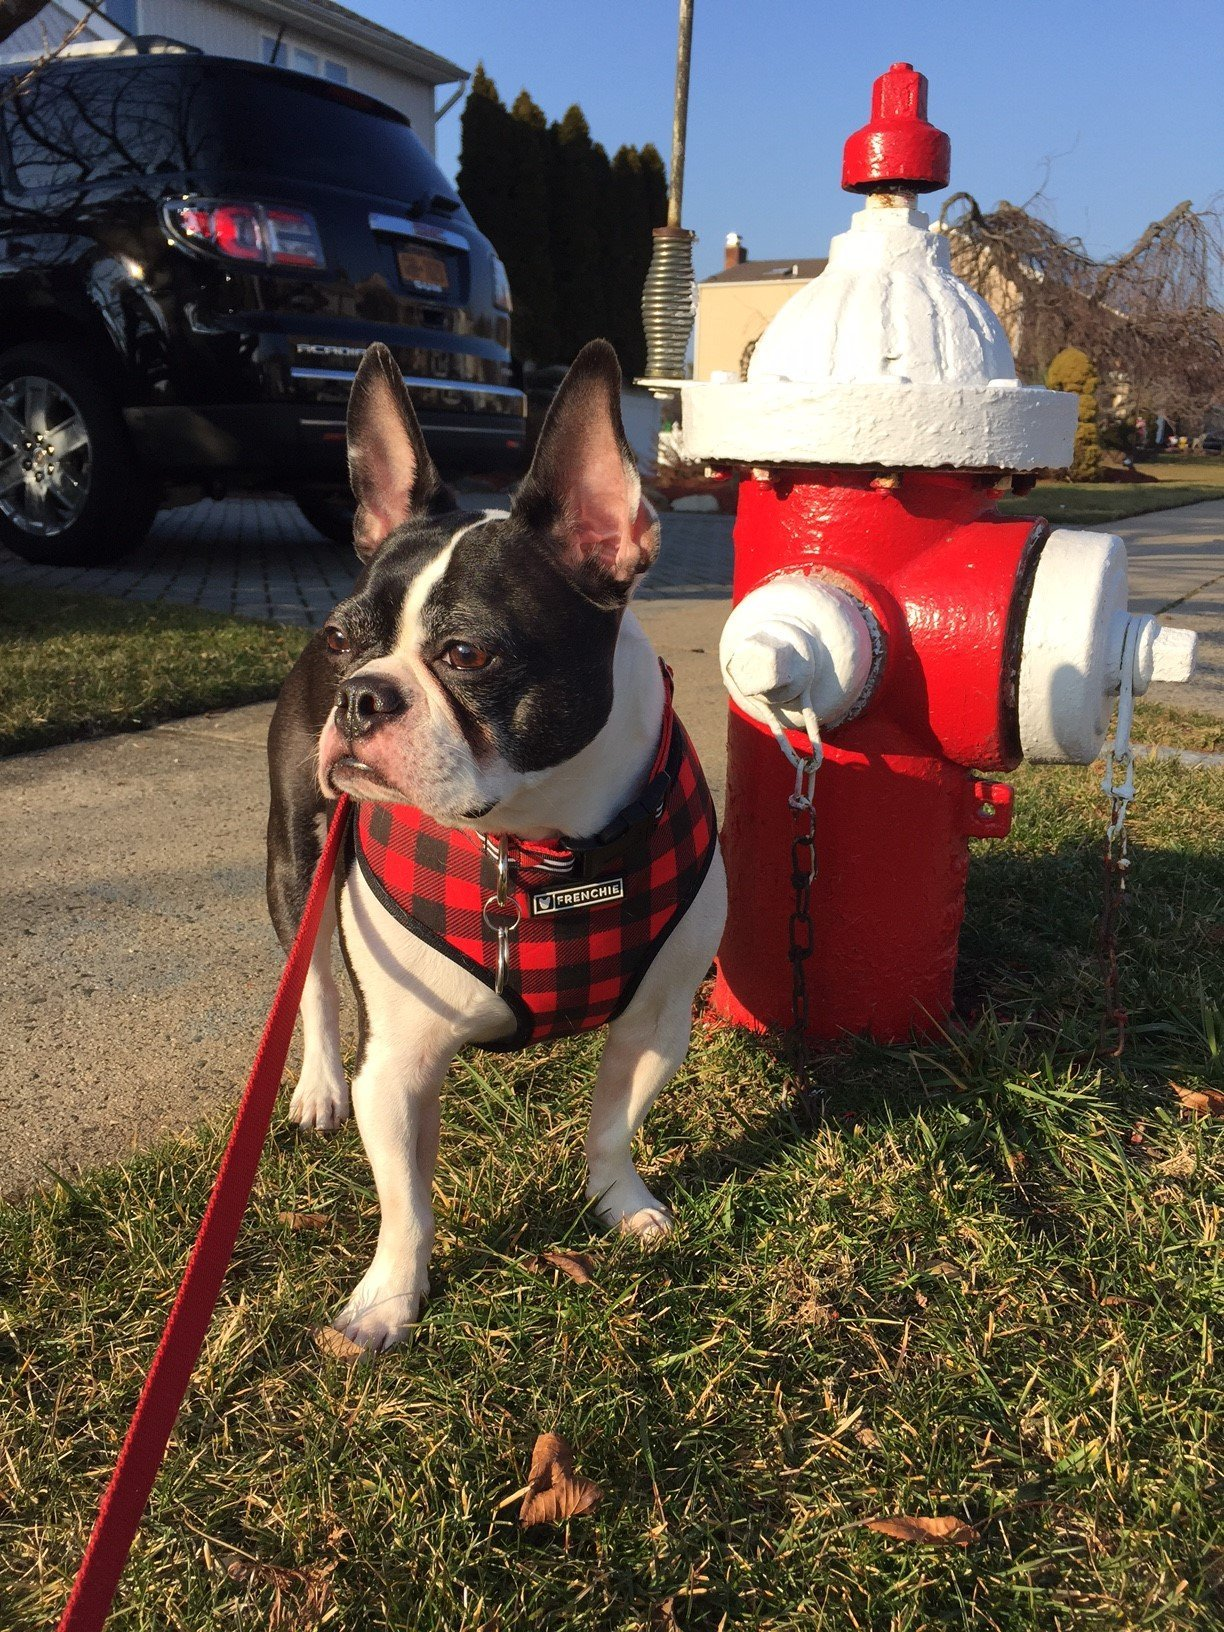 Tucker the pup standing next to a fire hidrant